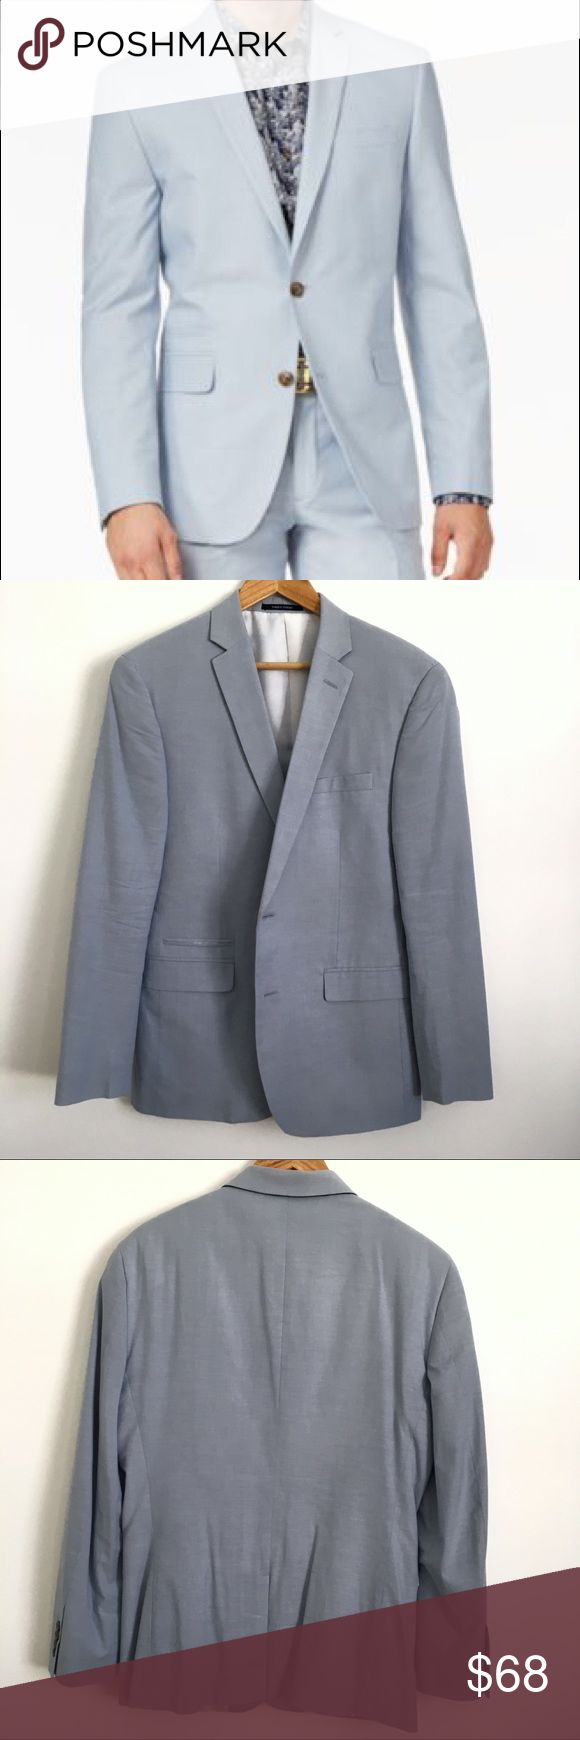 Men's Slim-Fit Cotton Sky Blue Jacket, Bar III Men's Slim-Fit Jacket, Bar III for Macy's  * Worn once. Still in good condition. See pictures for flaws.  * Composition: 100% cotton, lining 100% polyester  📦 Bundle + save on shipping  📫 Same day shipping M-F 🚫 NO TRADES | OFFERS WELCOME Bar III Suits & Blazers Suits